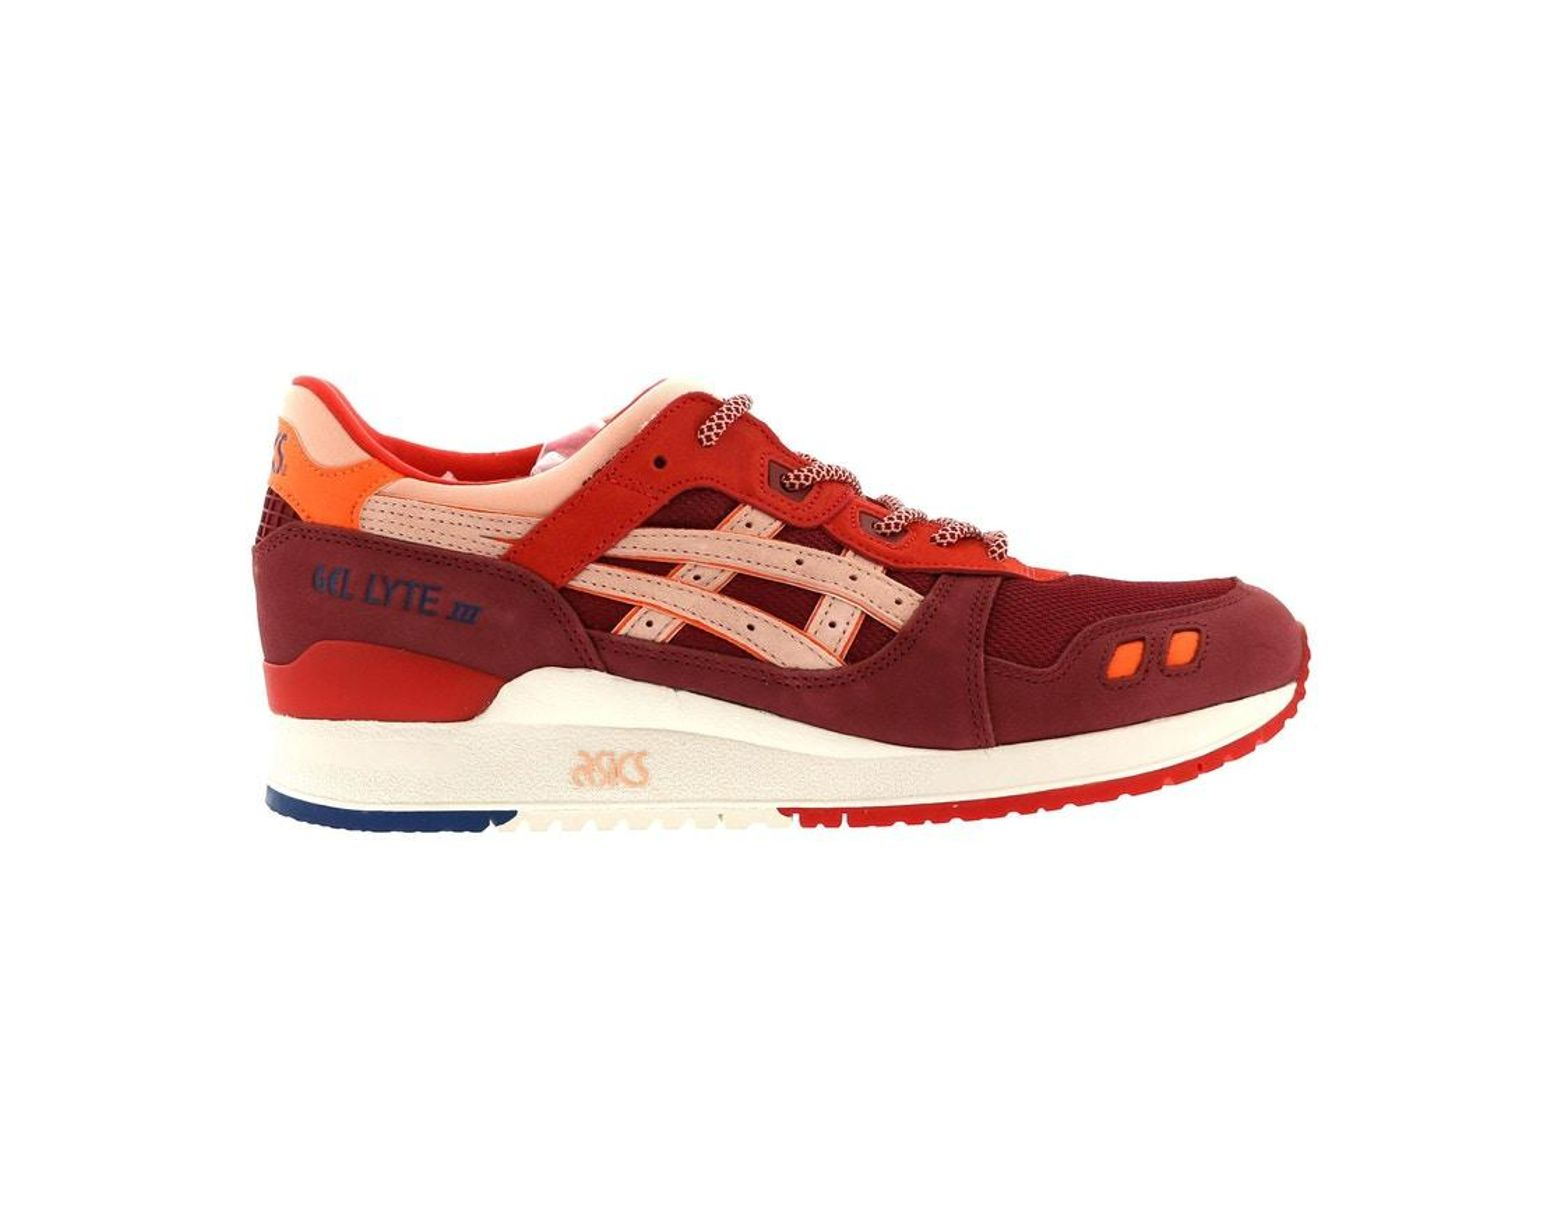 7b9fc79a Asics Gel-lyte Iii Ronnie Fieg Volcano 2.0 for Men - Lyst